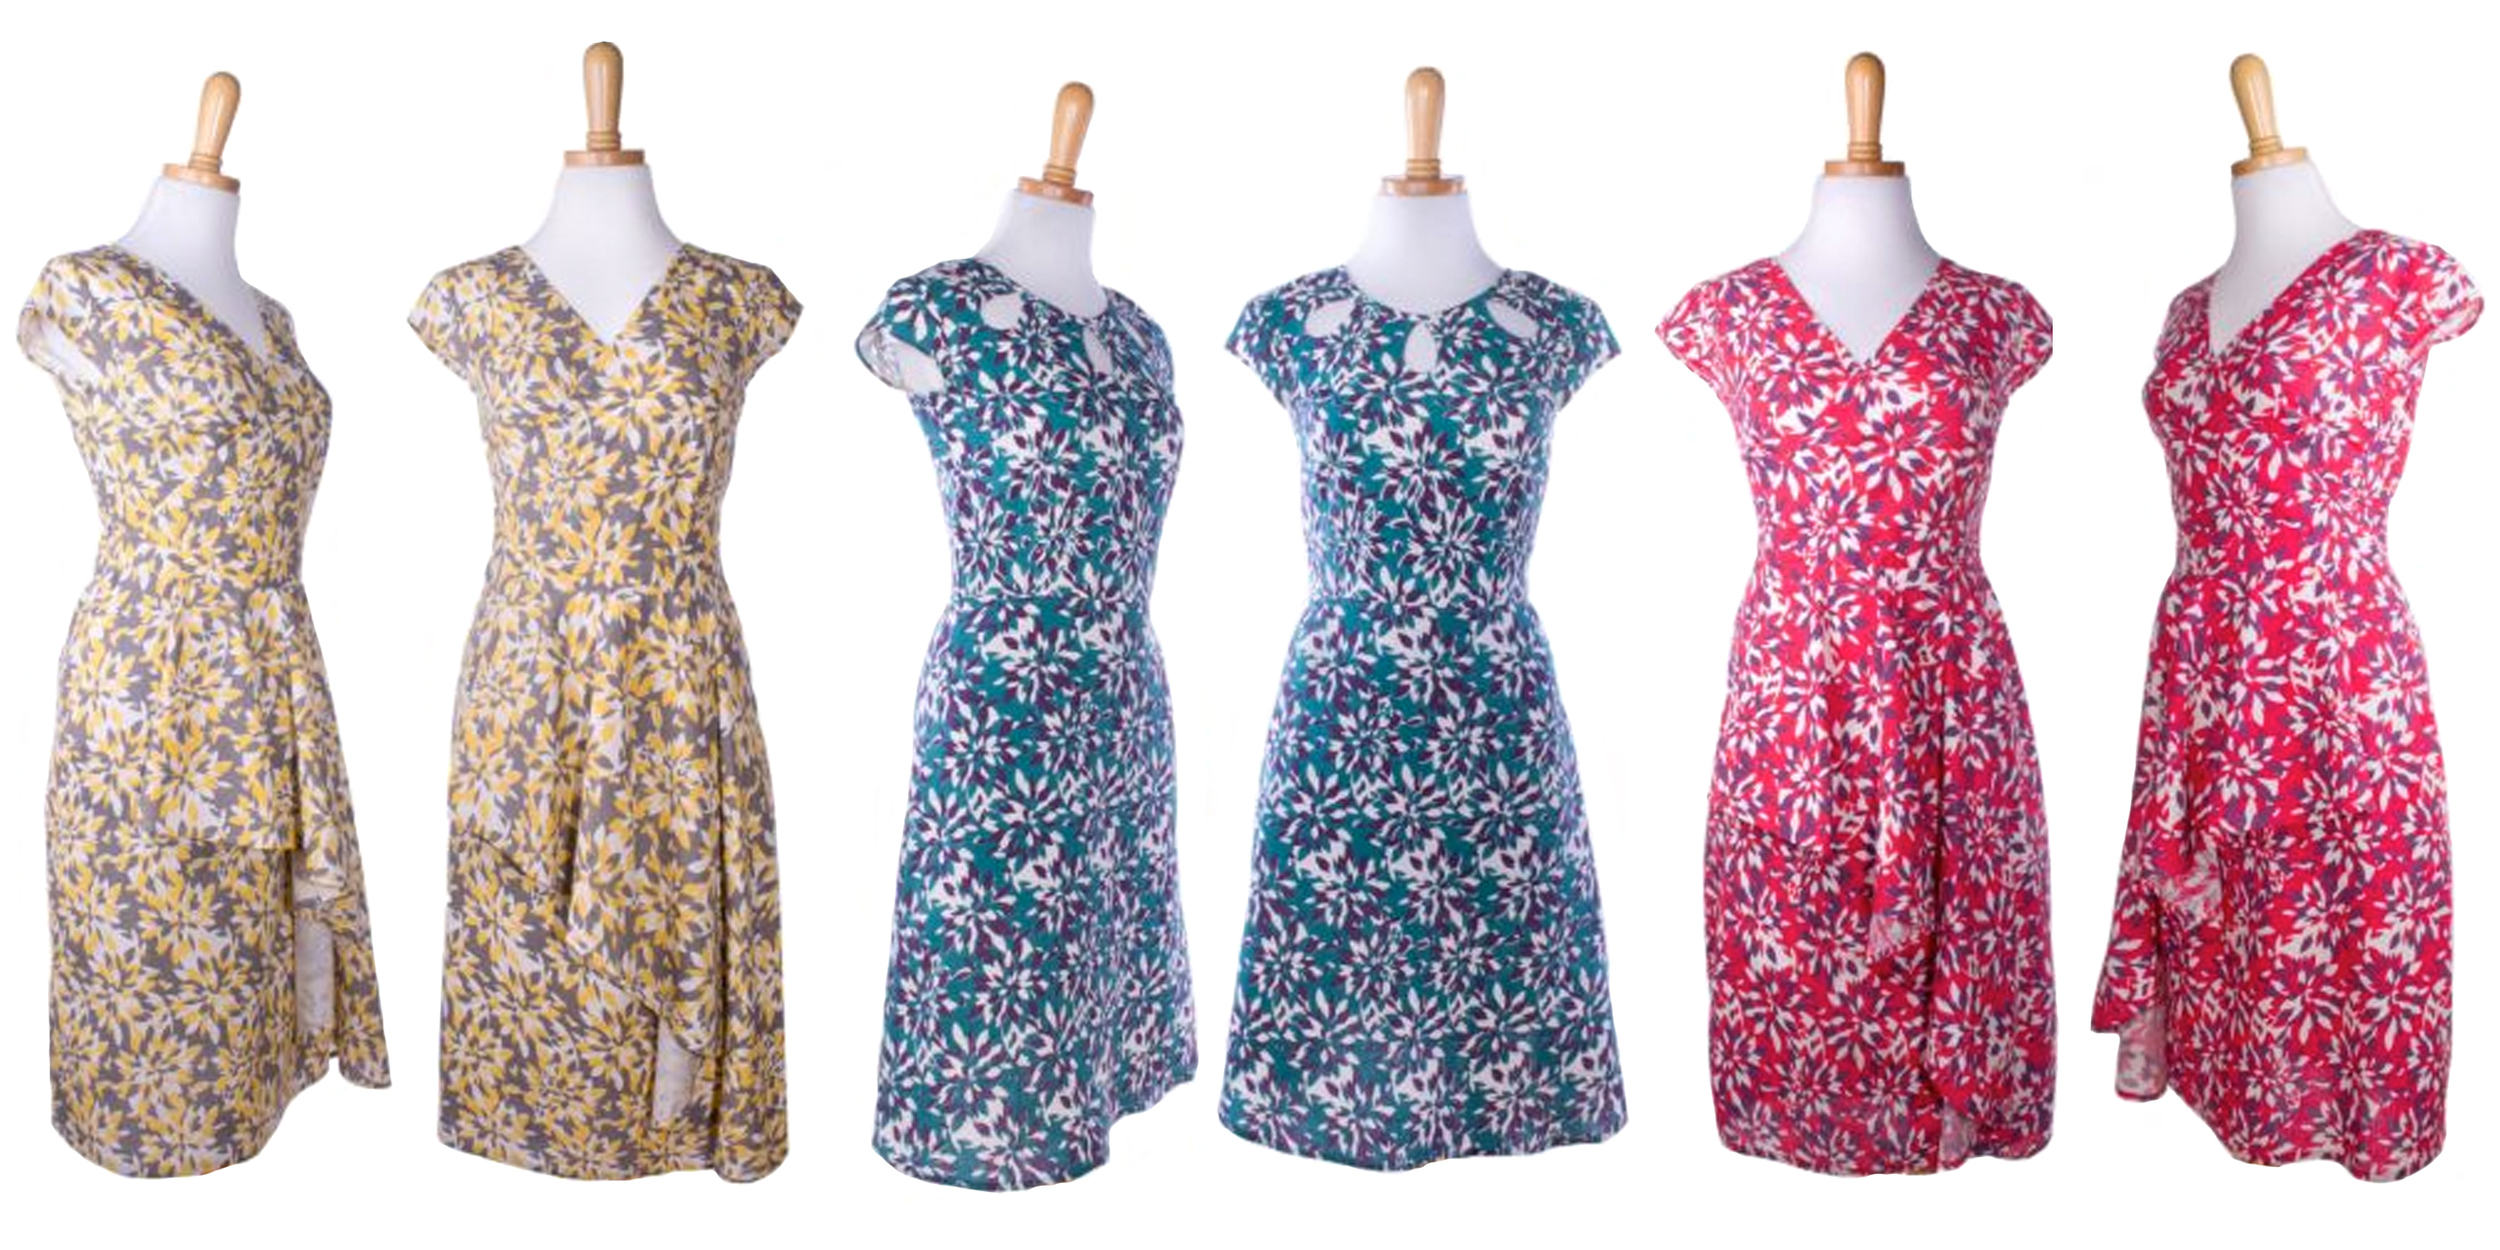 Left & Right - Flights of Floral dress     Middle- Keyhole Cut Out Dress